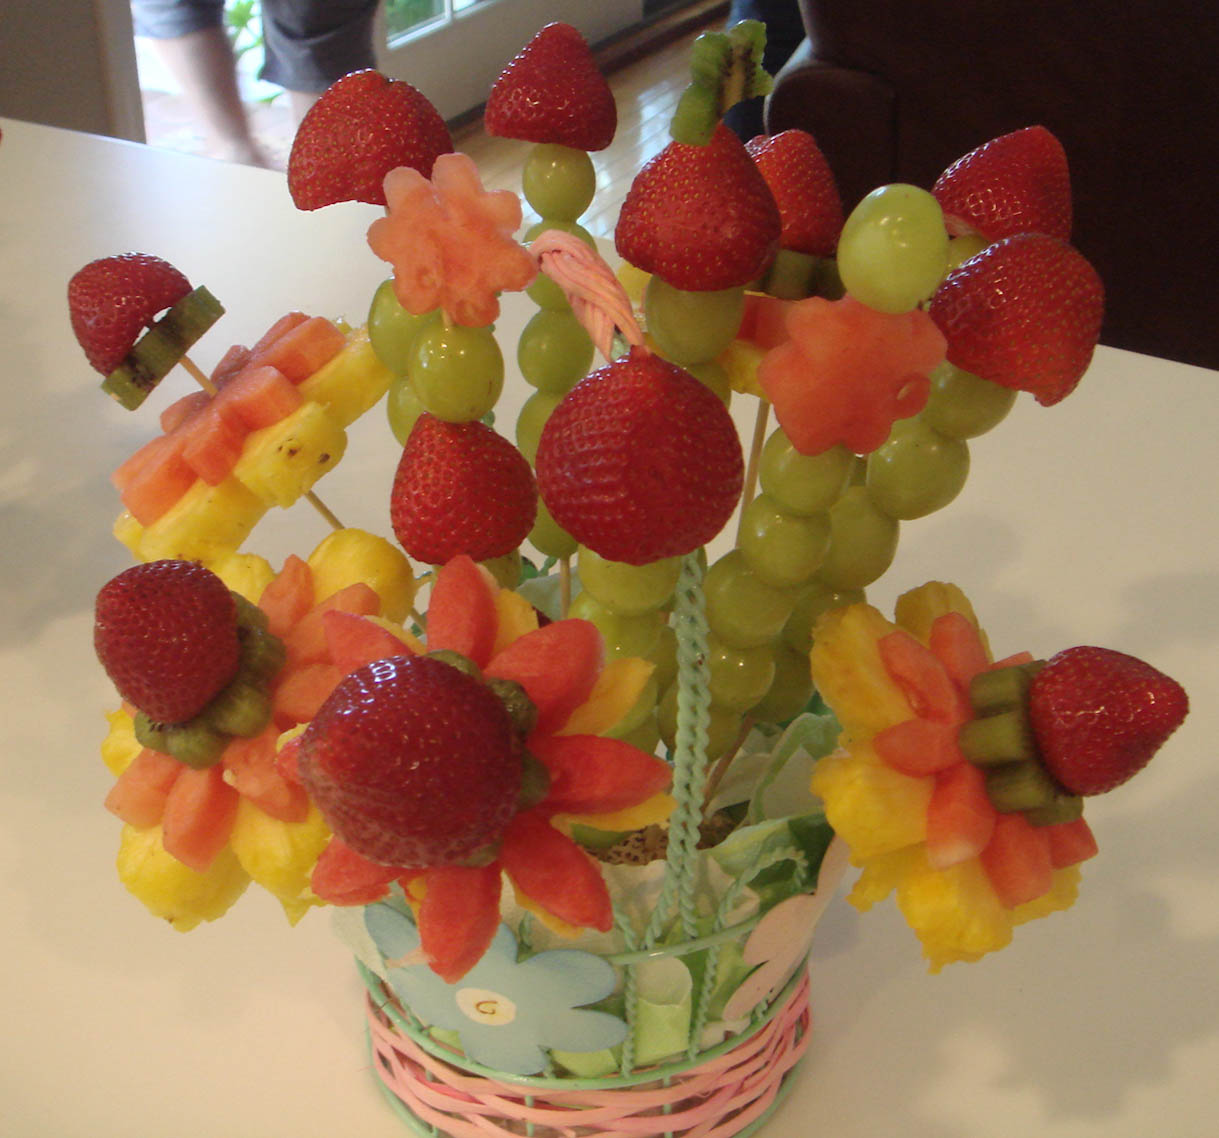 beautiful fruits for baby shower centerpiece ideas